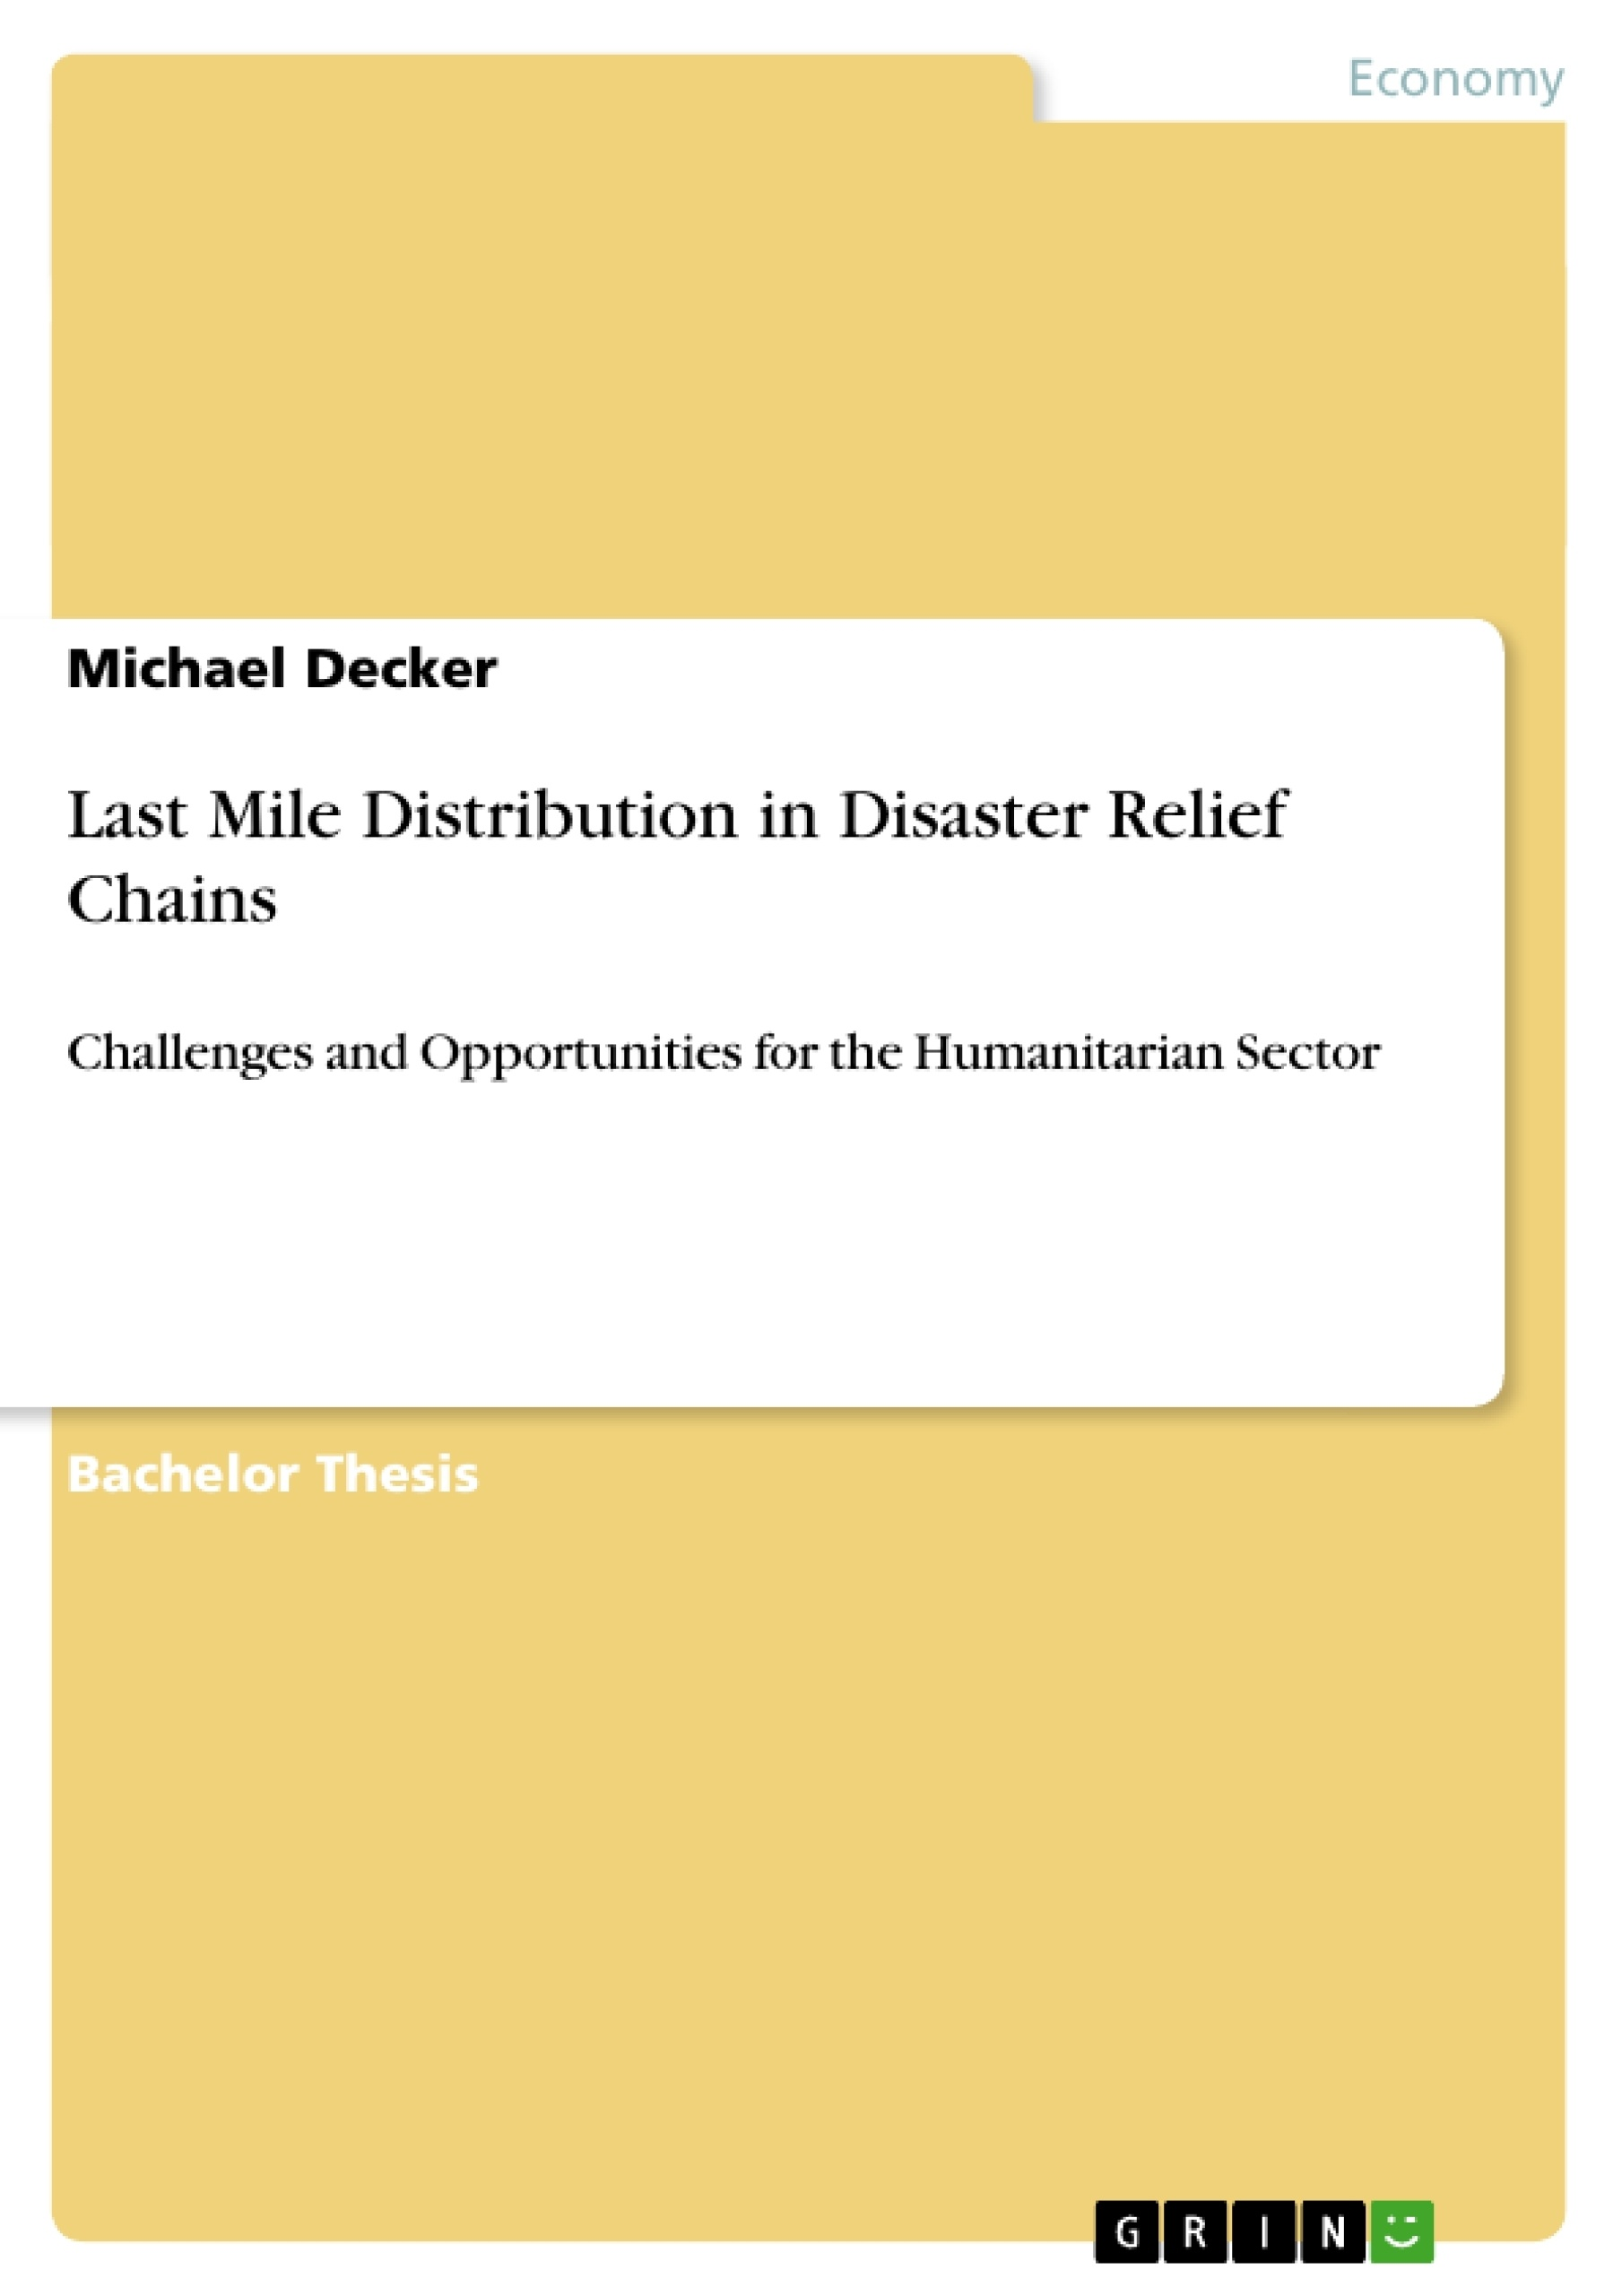 Title: Last Mile Distribution in Disaster Relief Chains